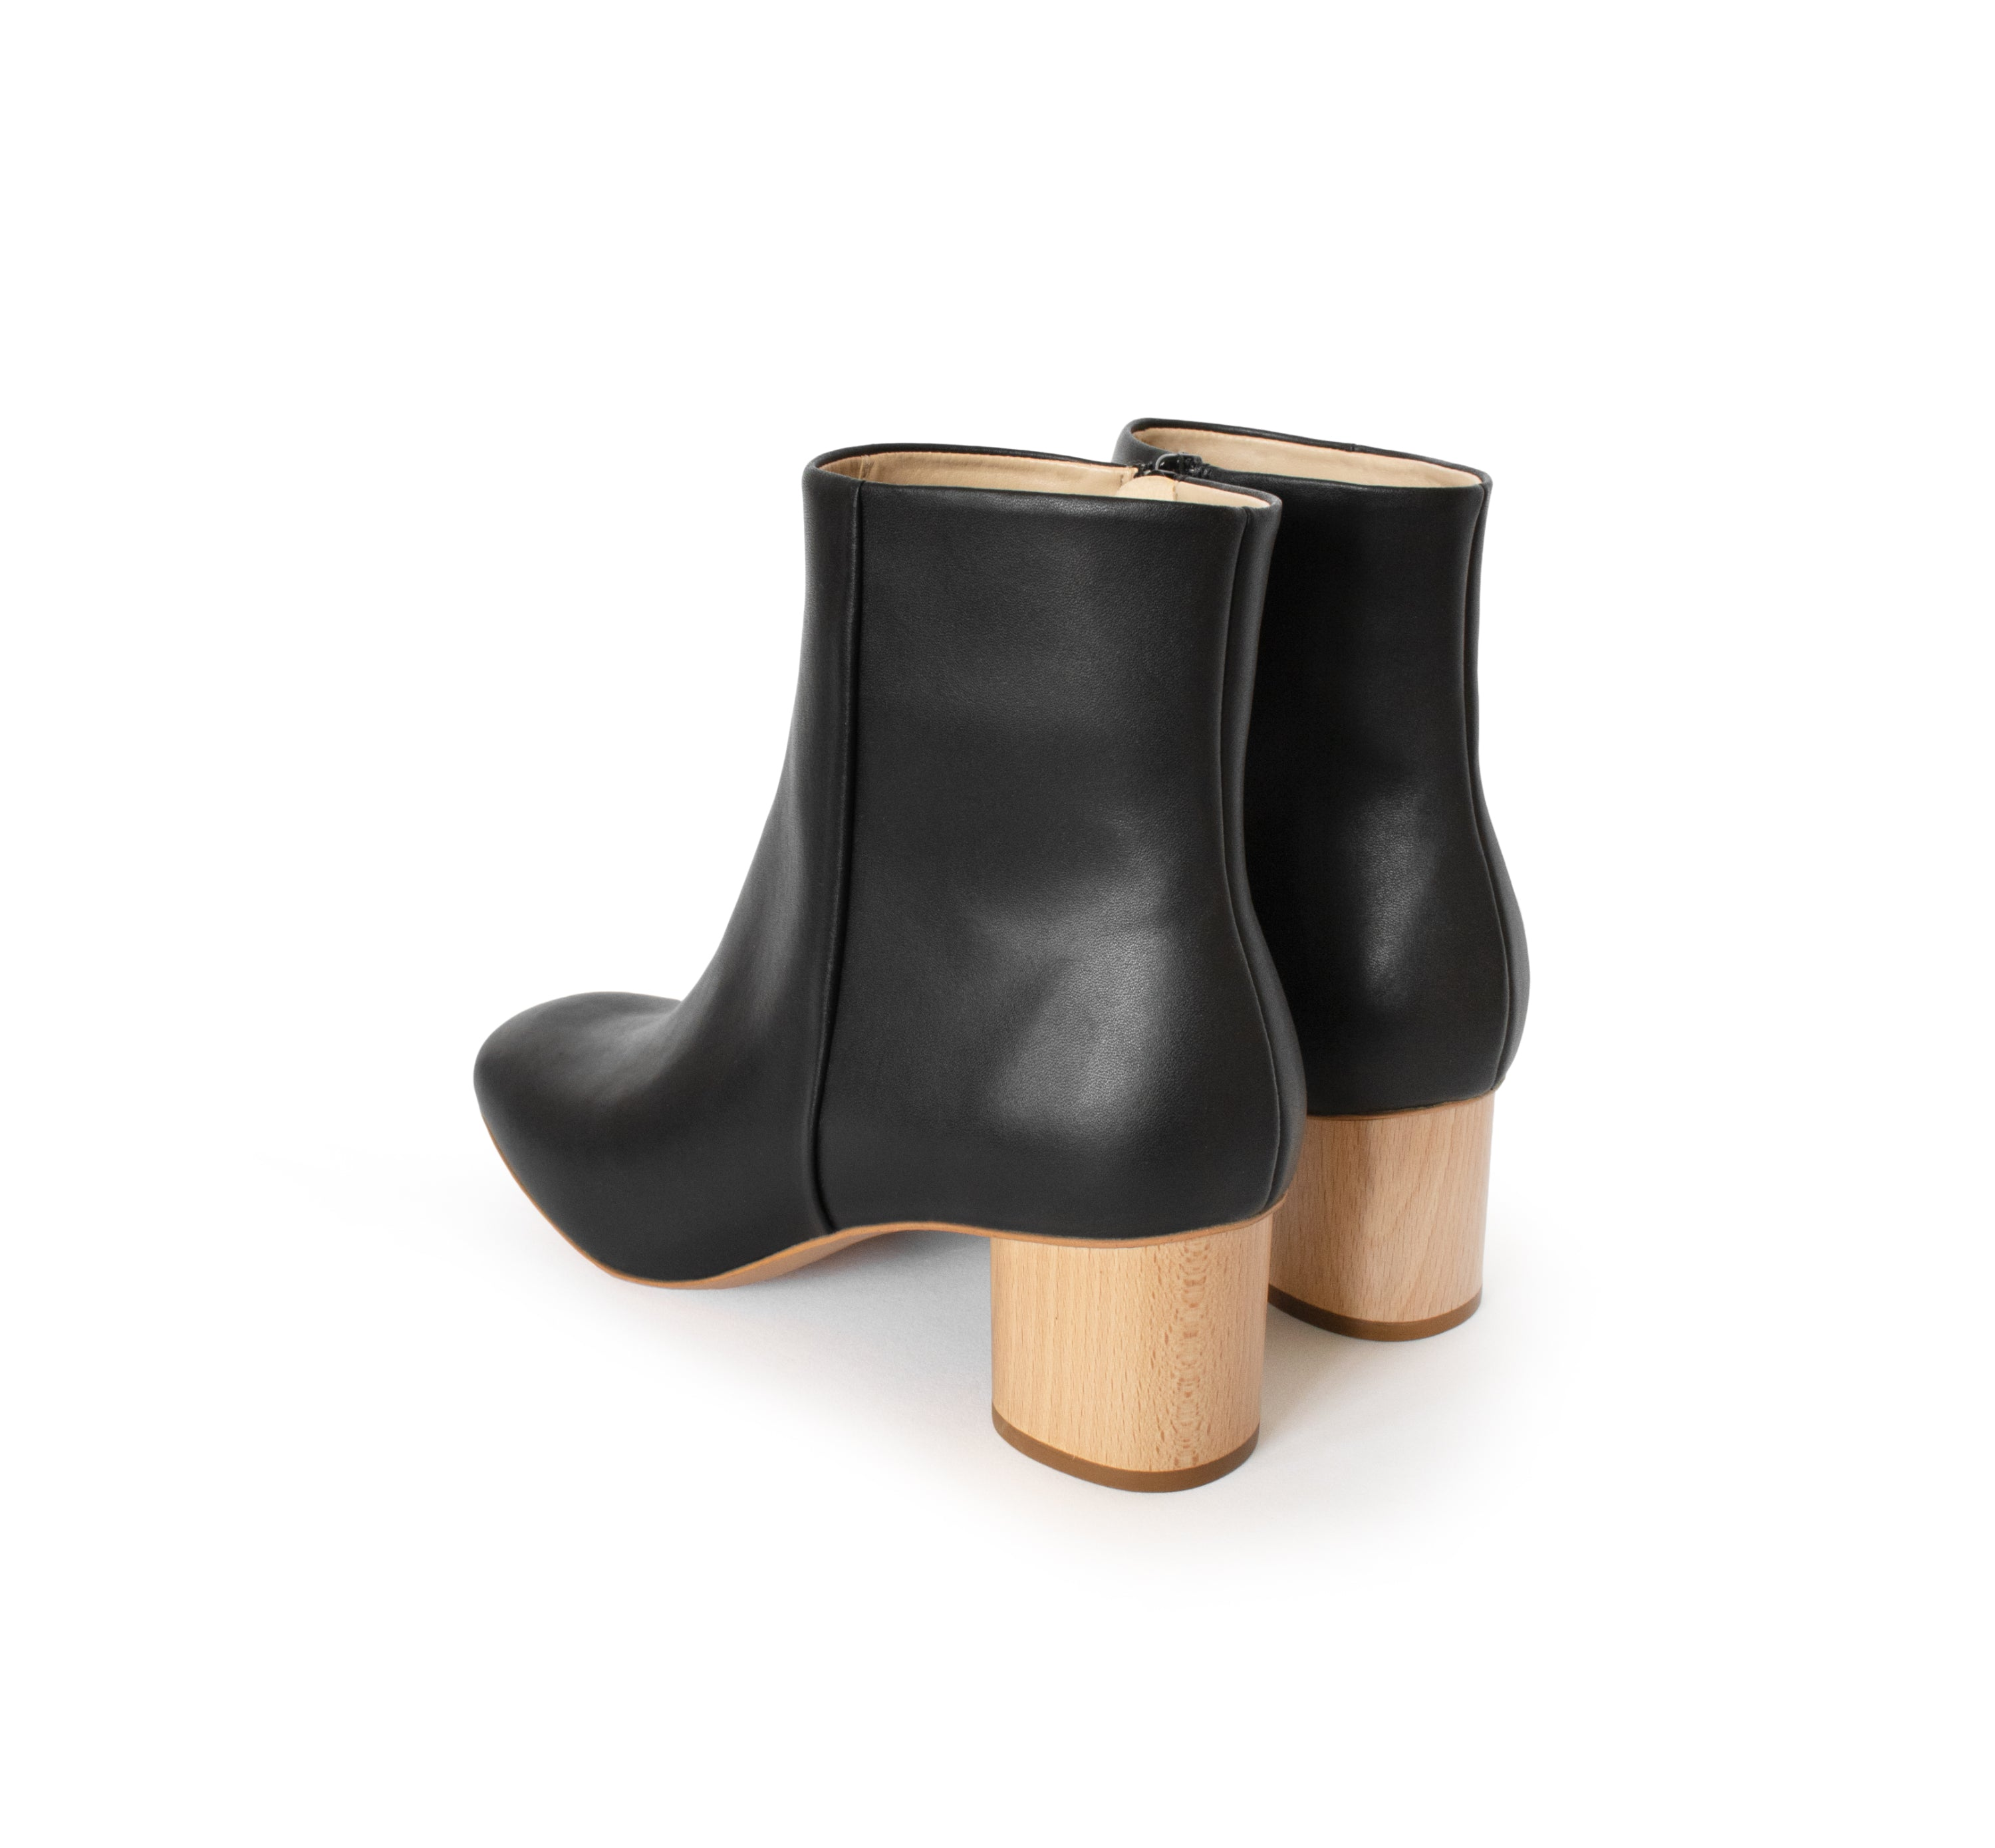 Low Ankle Boot Black Faux-Nappa Vegan Luxe Ethical Footwear by Sydney Brown. Natural Sustainable Wood Heels. Animal Free. Cruelty Free. Autumn Winter 2018 Pre Order.